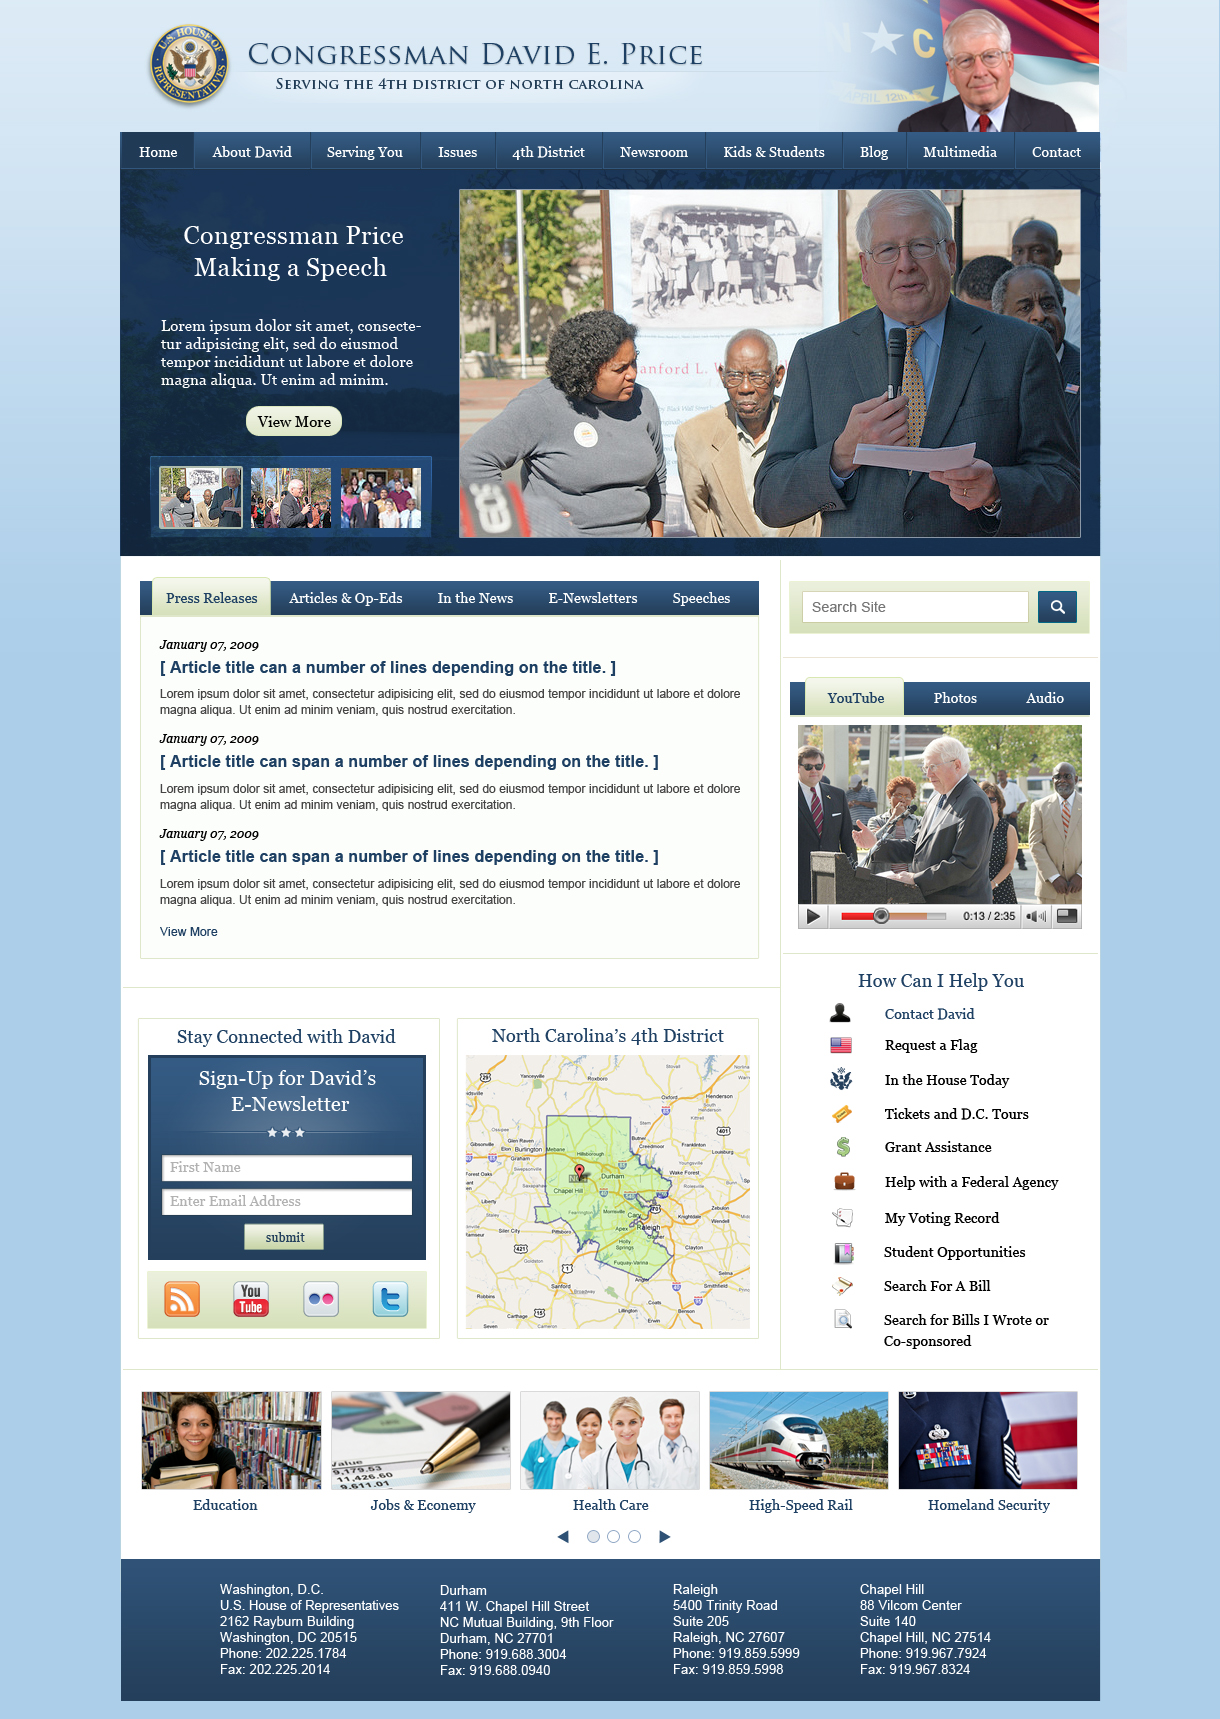 Dc Web Design Company Launches New Online Infrastructure For 9 Congressional Members Adding To Its Impressive Congressional Portfolio Of 110 Congressional Members Wdg